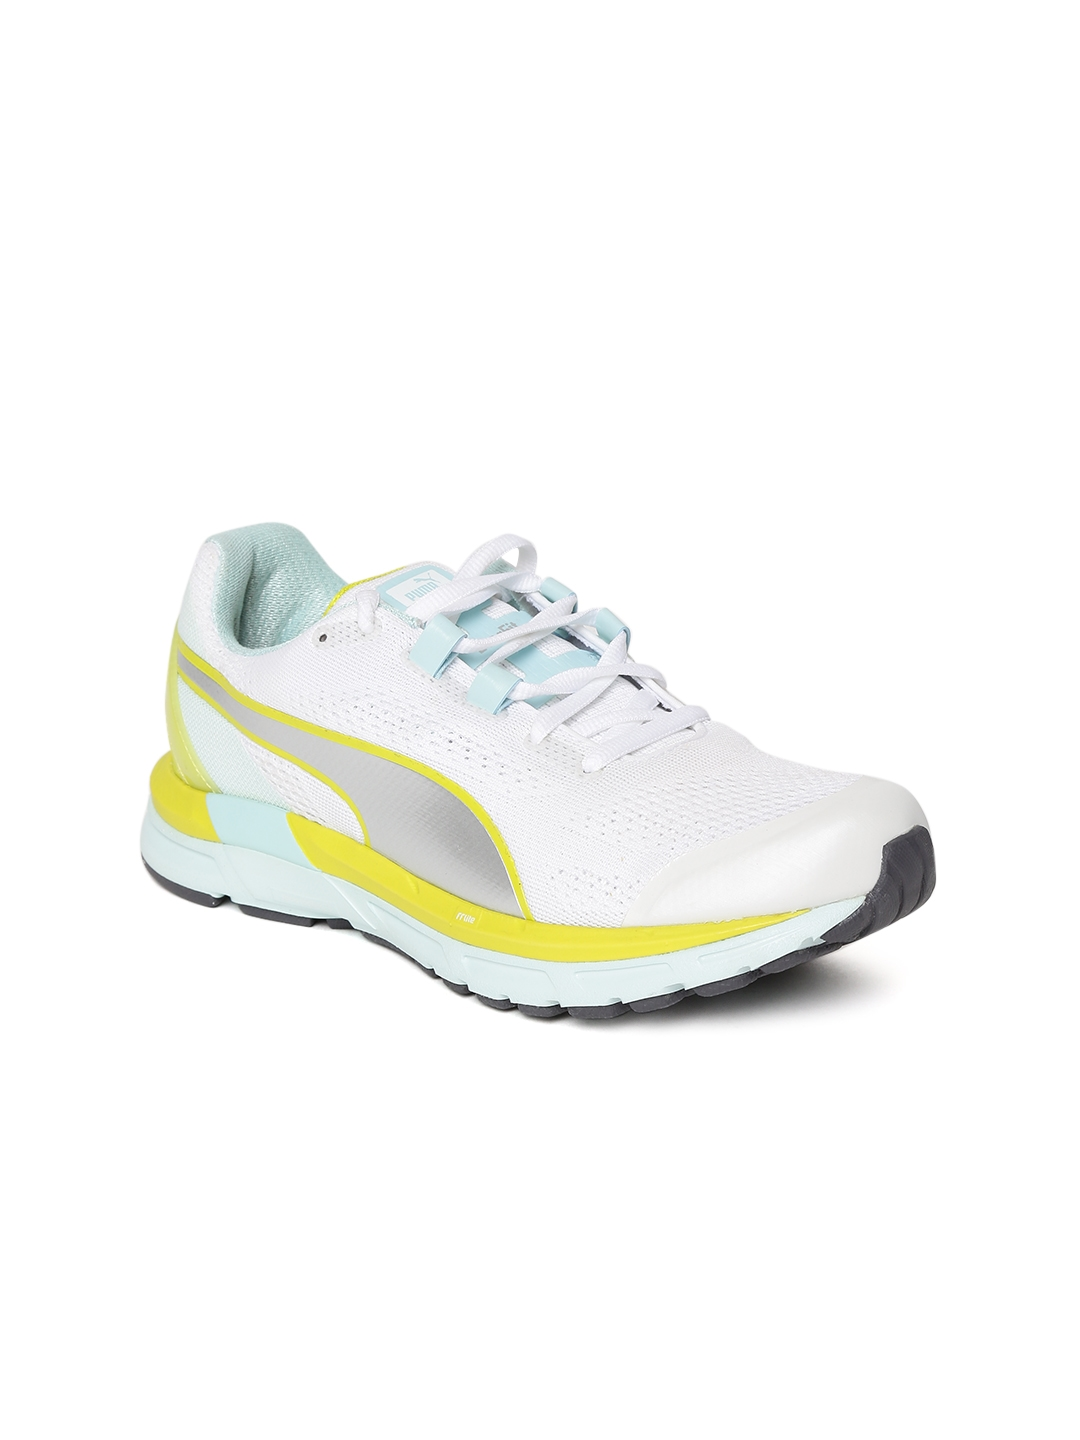 eae3f5ccab4 Buy Puma Women White Faas 600 S V2 Running Shoes - Sports Shoes for ...